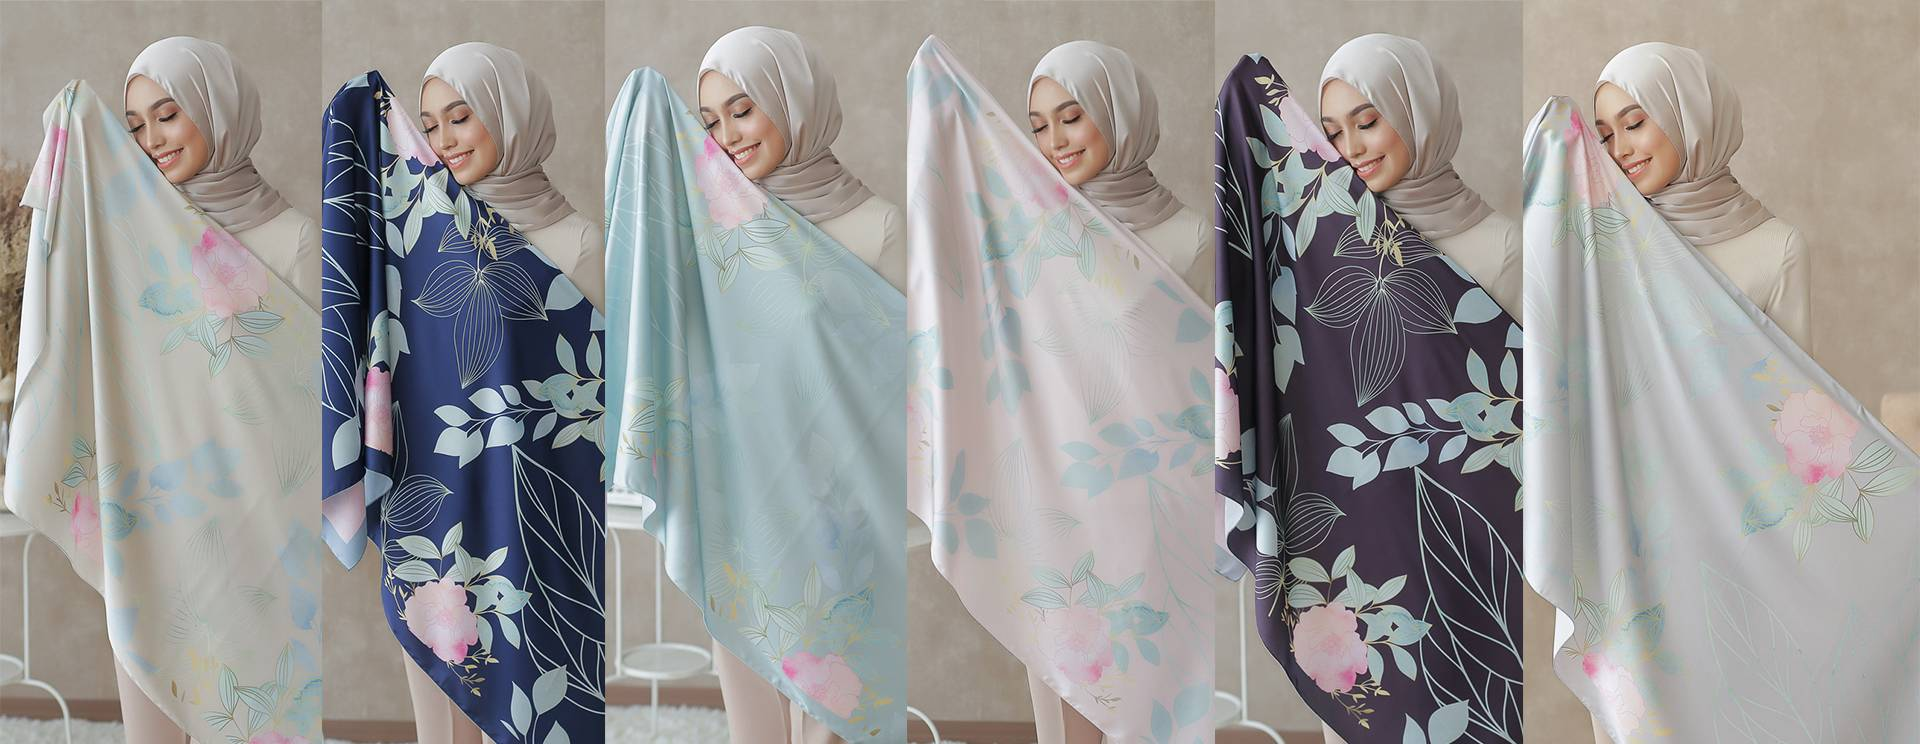 Bontique Scarf Collection 1